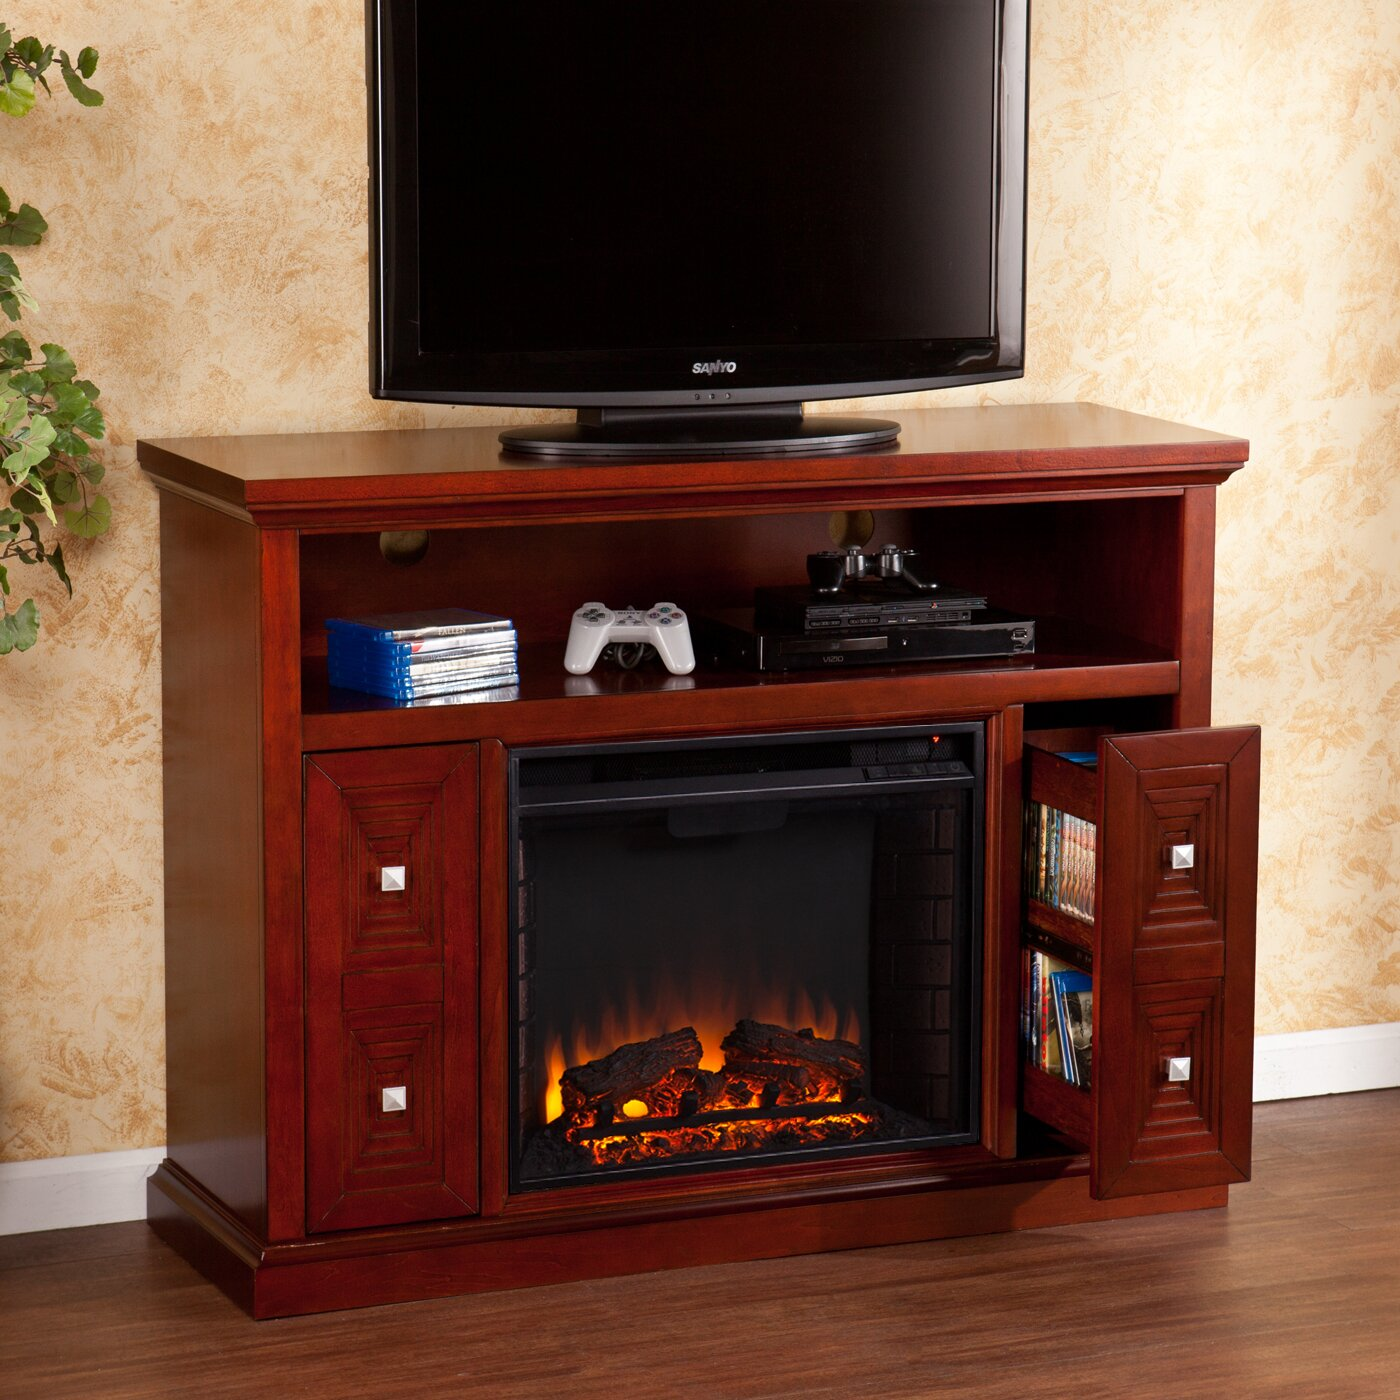 wildon home faulkner tv stand with electric fireplace reviews wayfair. Black Bedroom Furniture Sets. Home Design Ideas